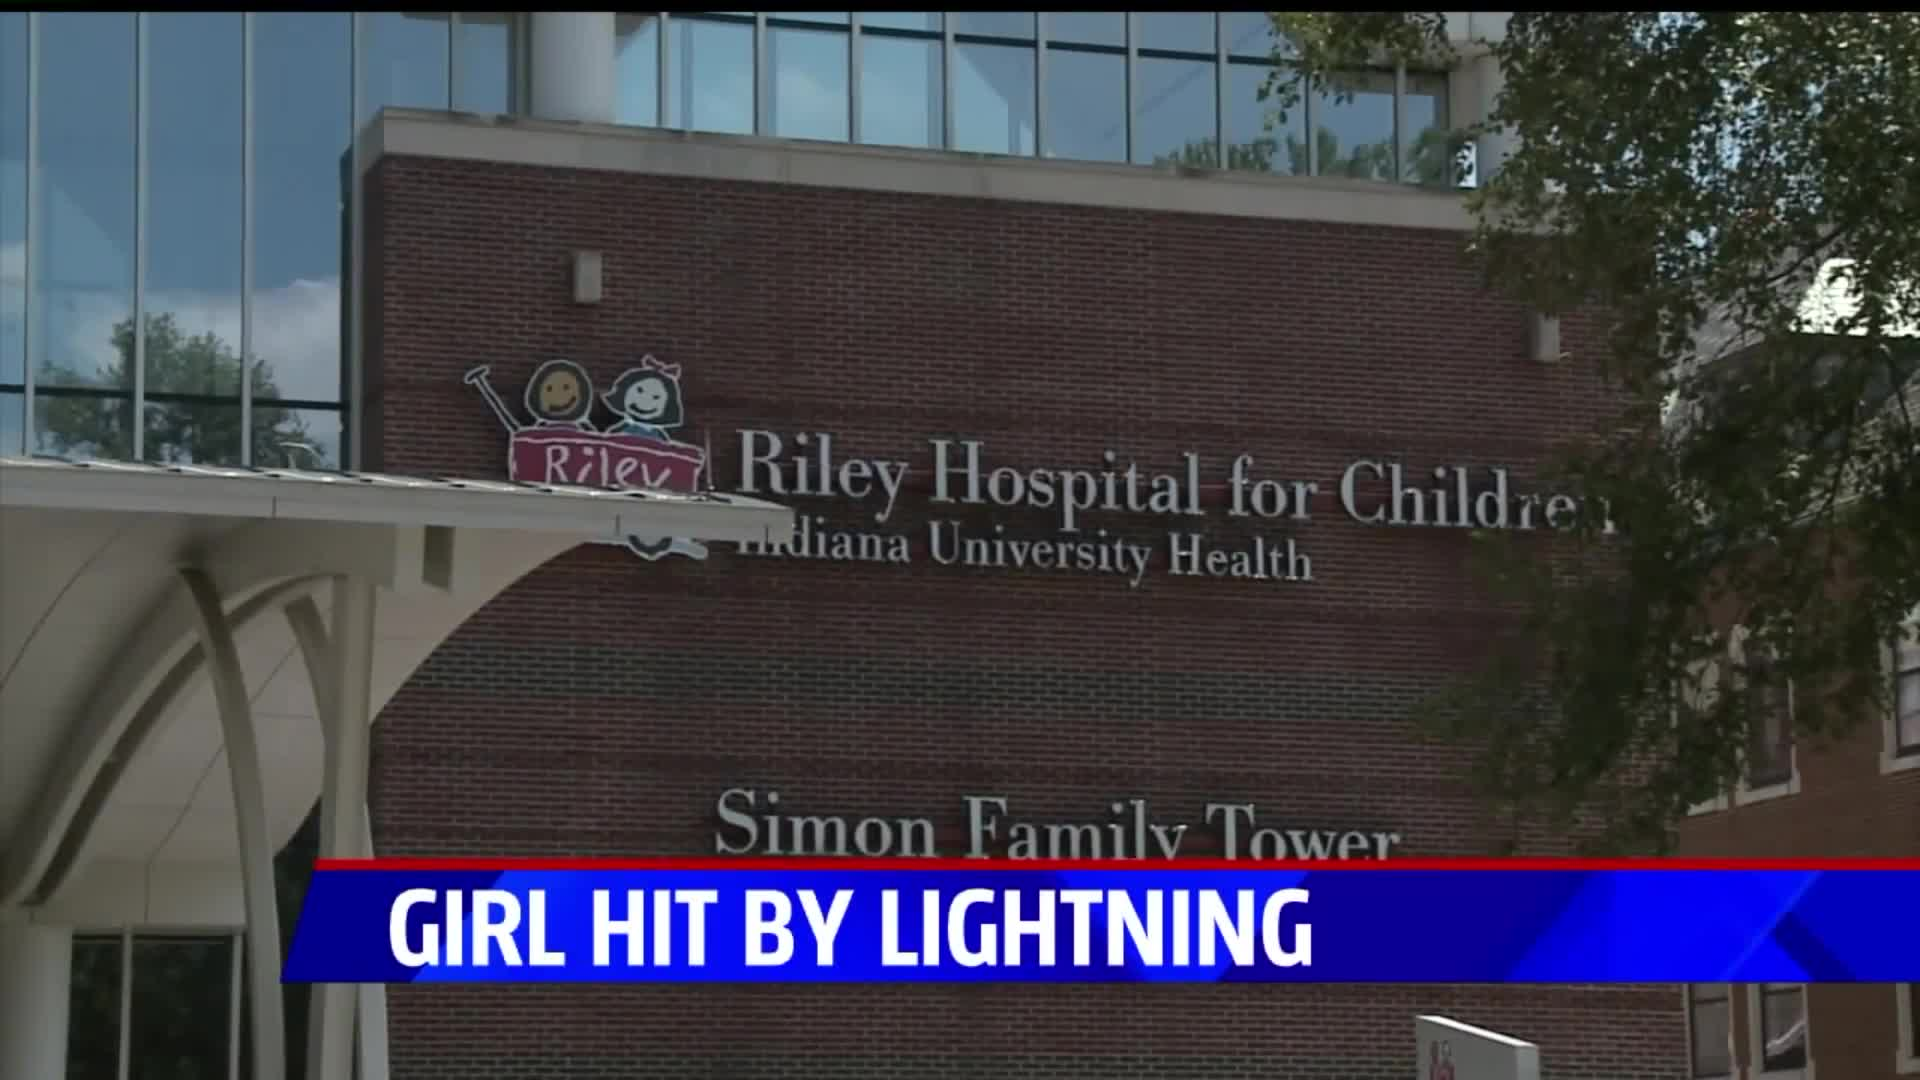 6-Year-Old Girl Struck By Lightning While Getting Into Grandmother's Car